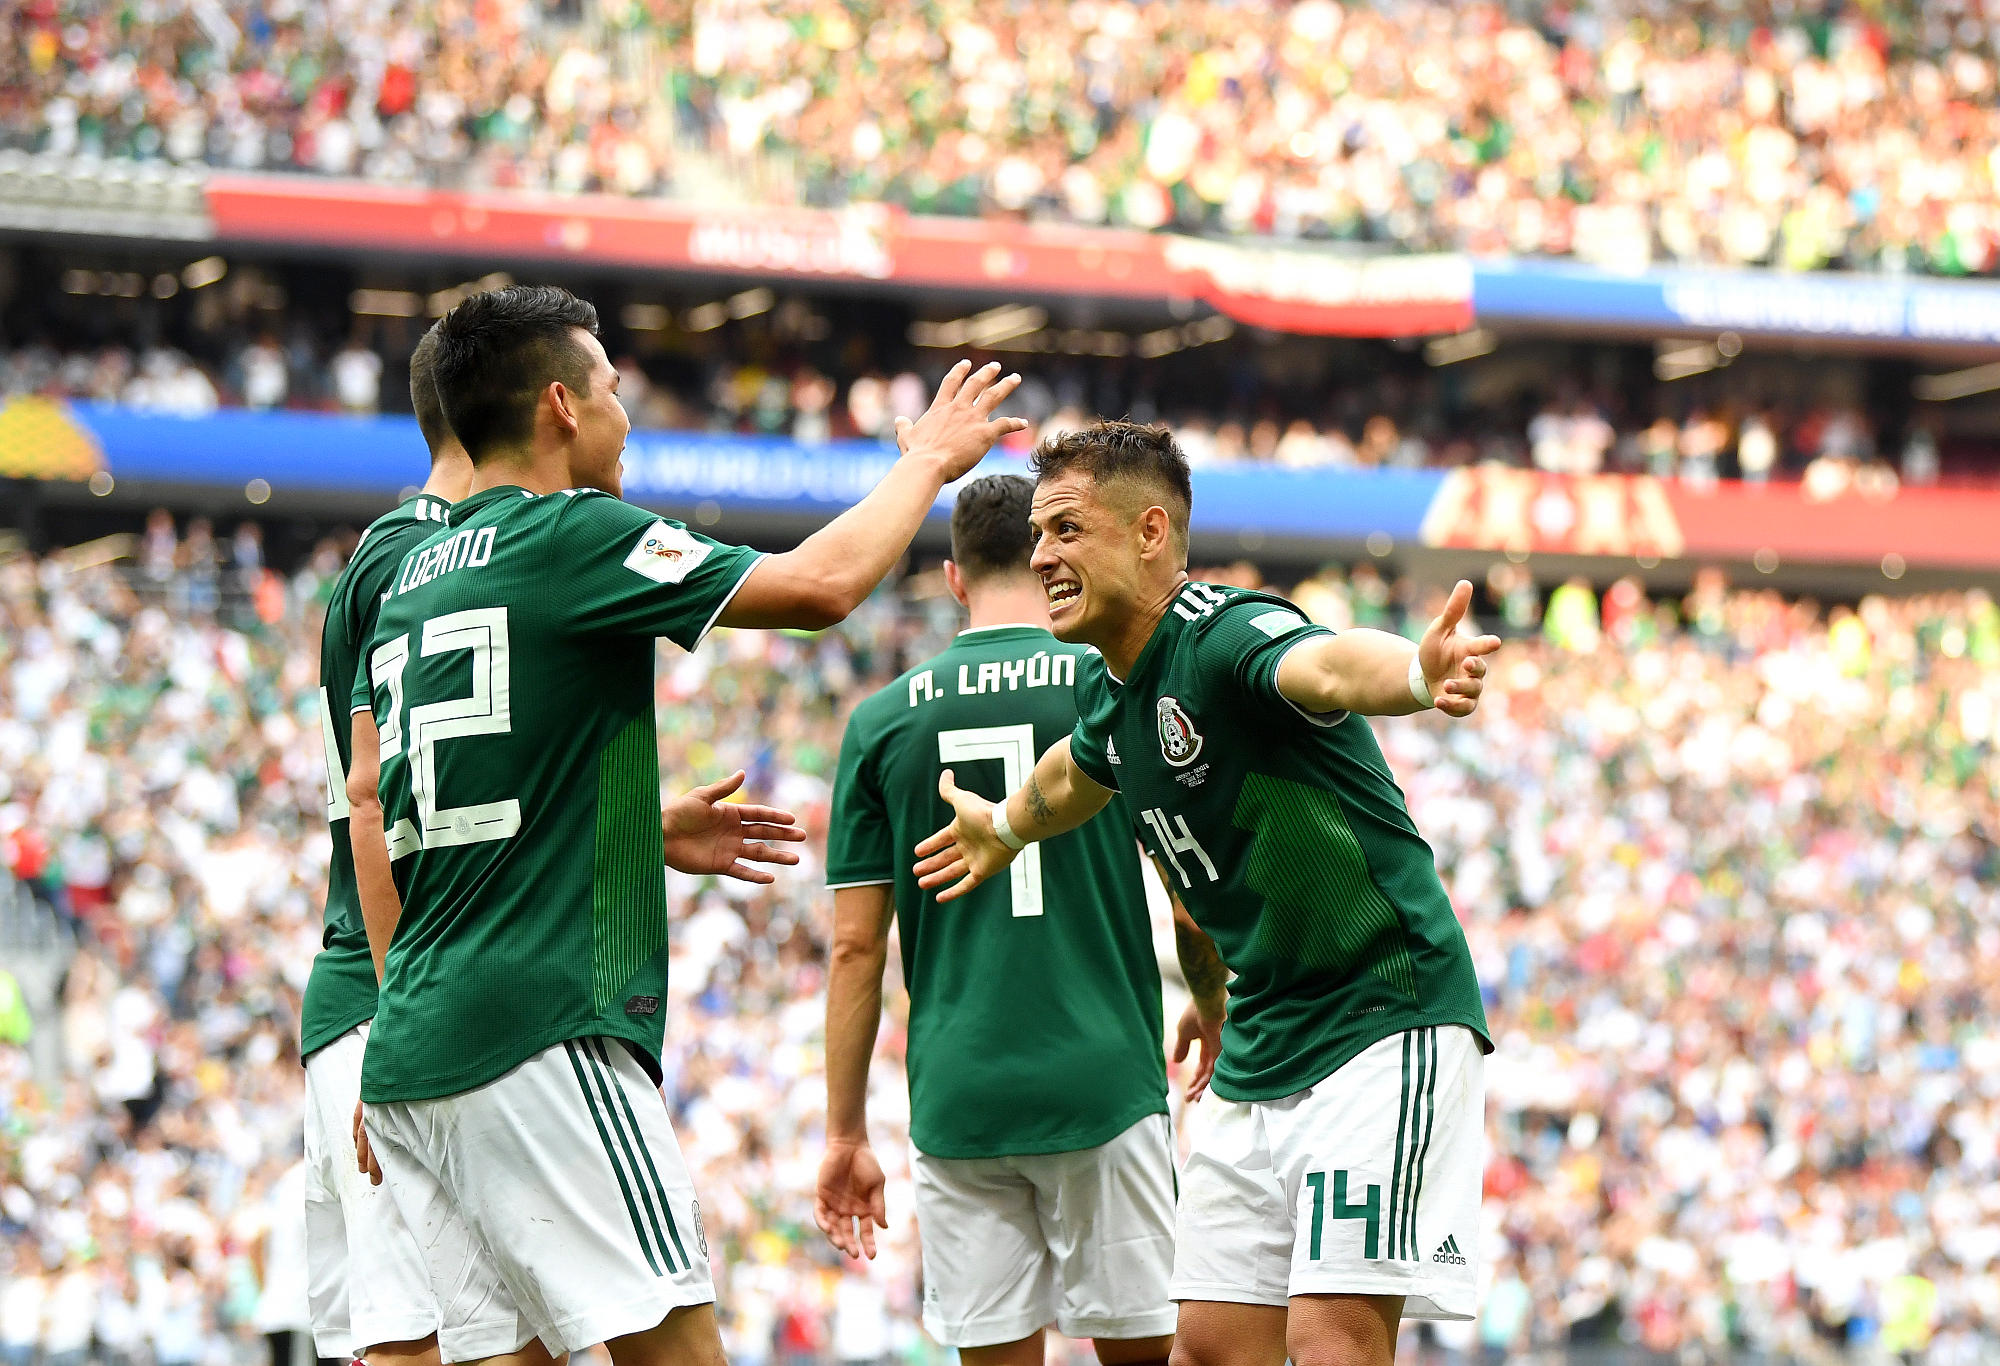 Javier Hernandez celebrates scoring a World Cup goal against Germany